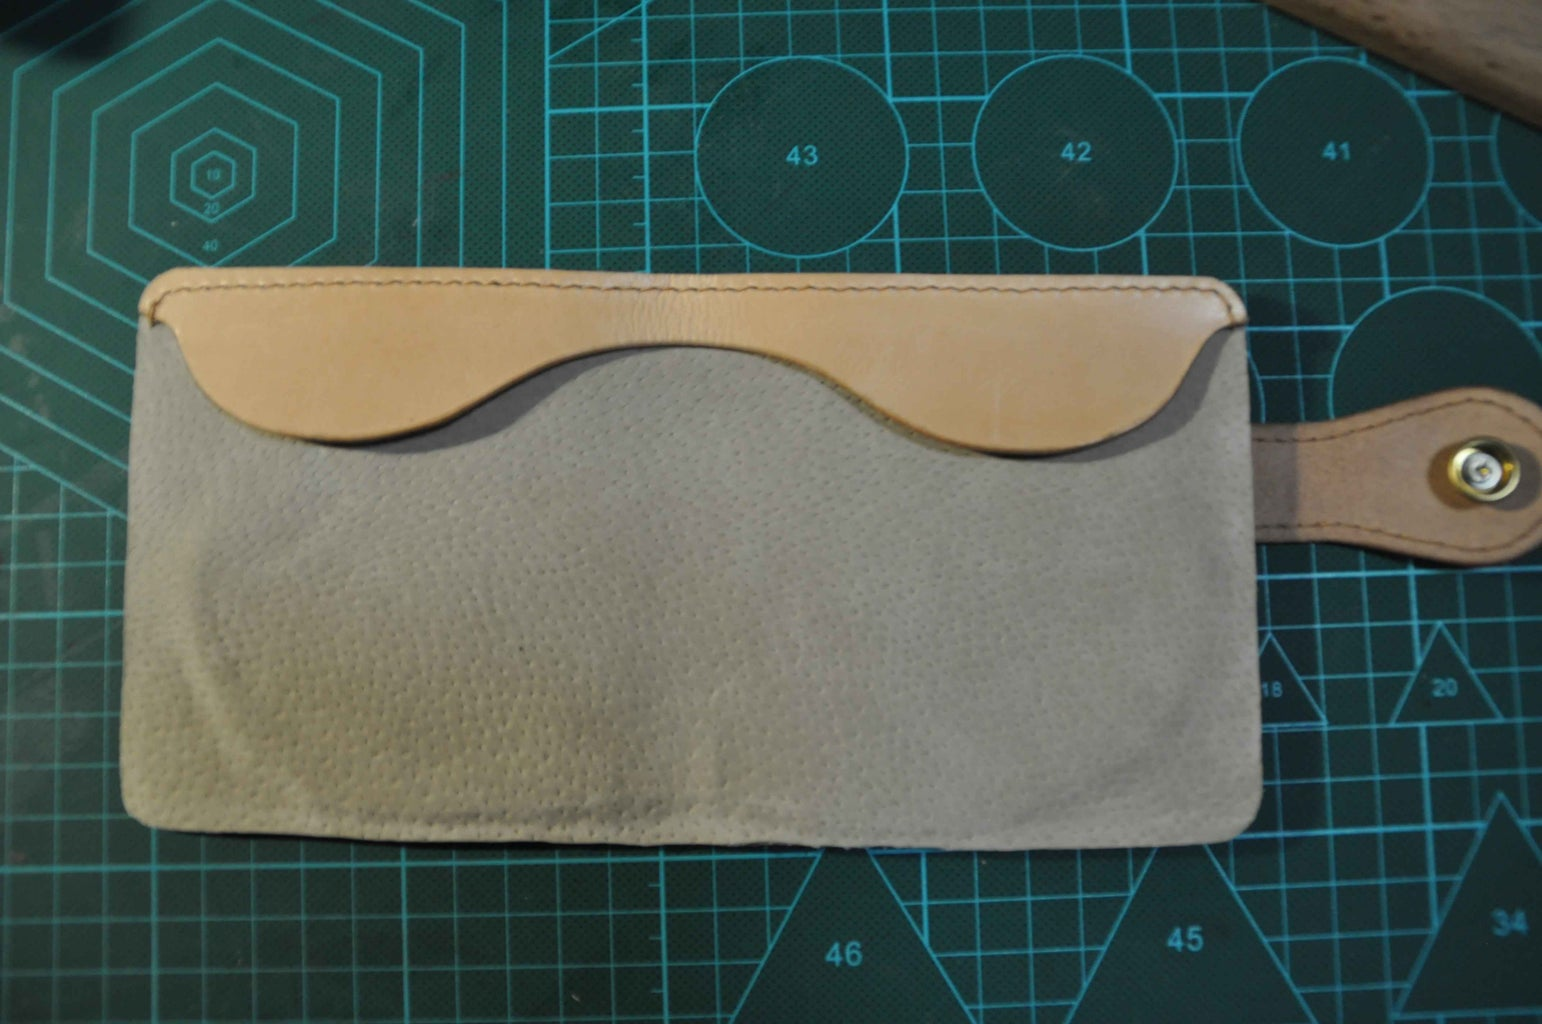 Sew the Beam Leather On.